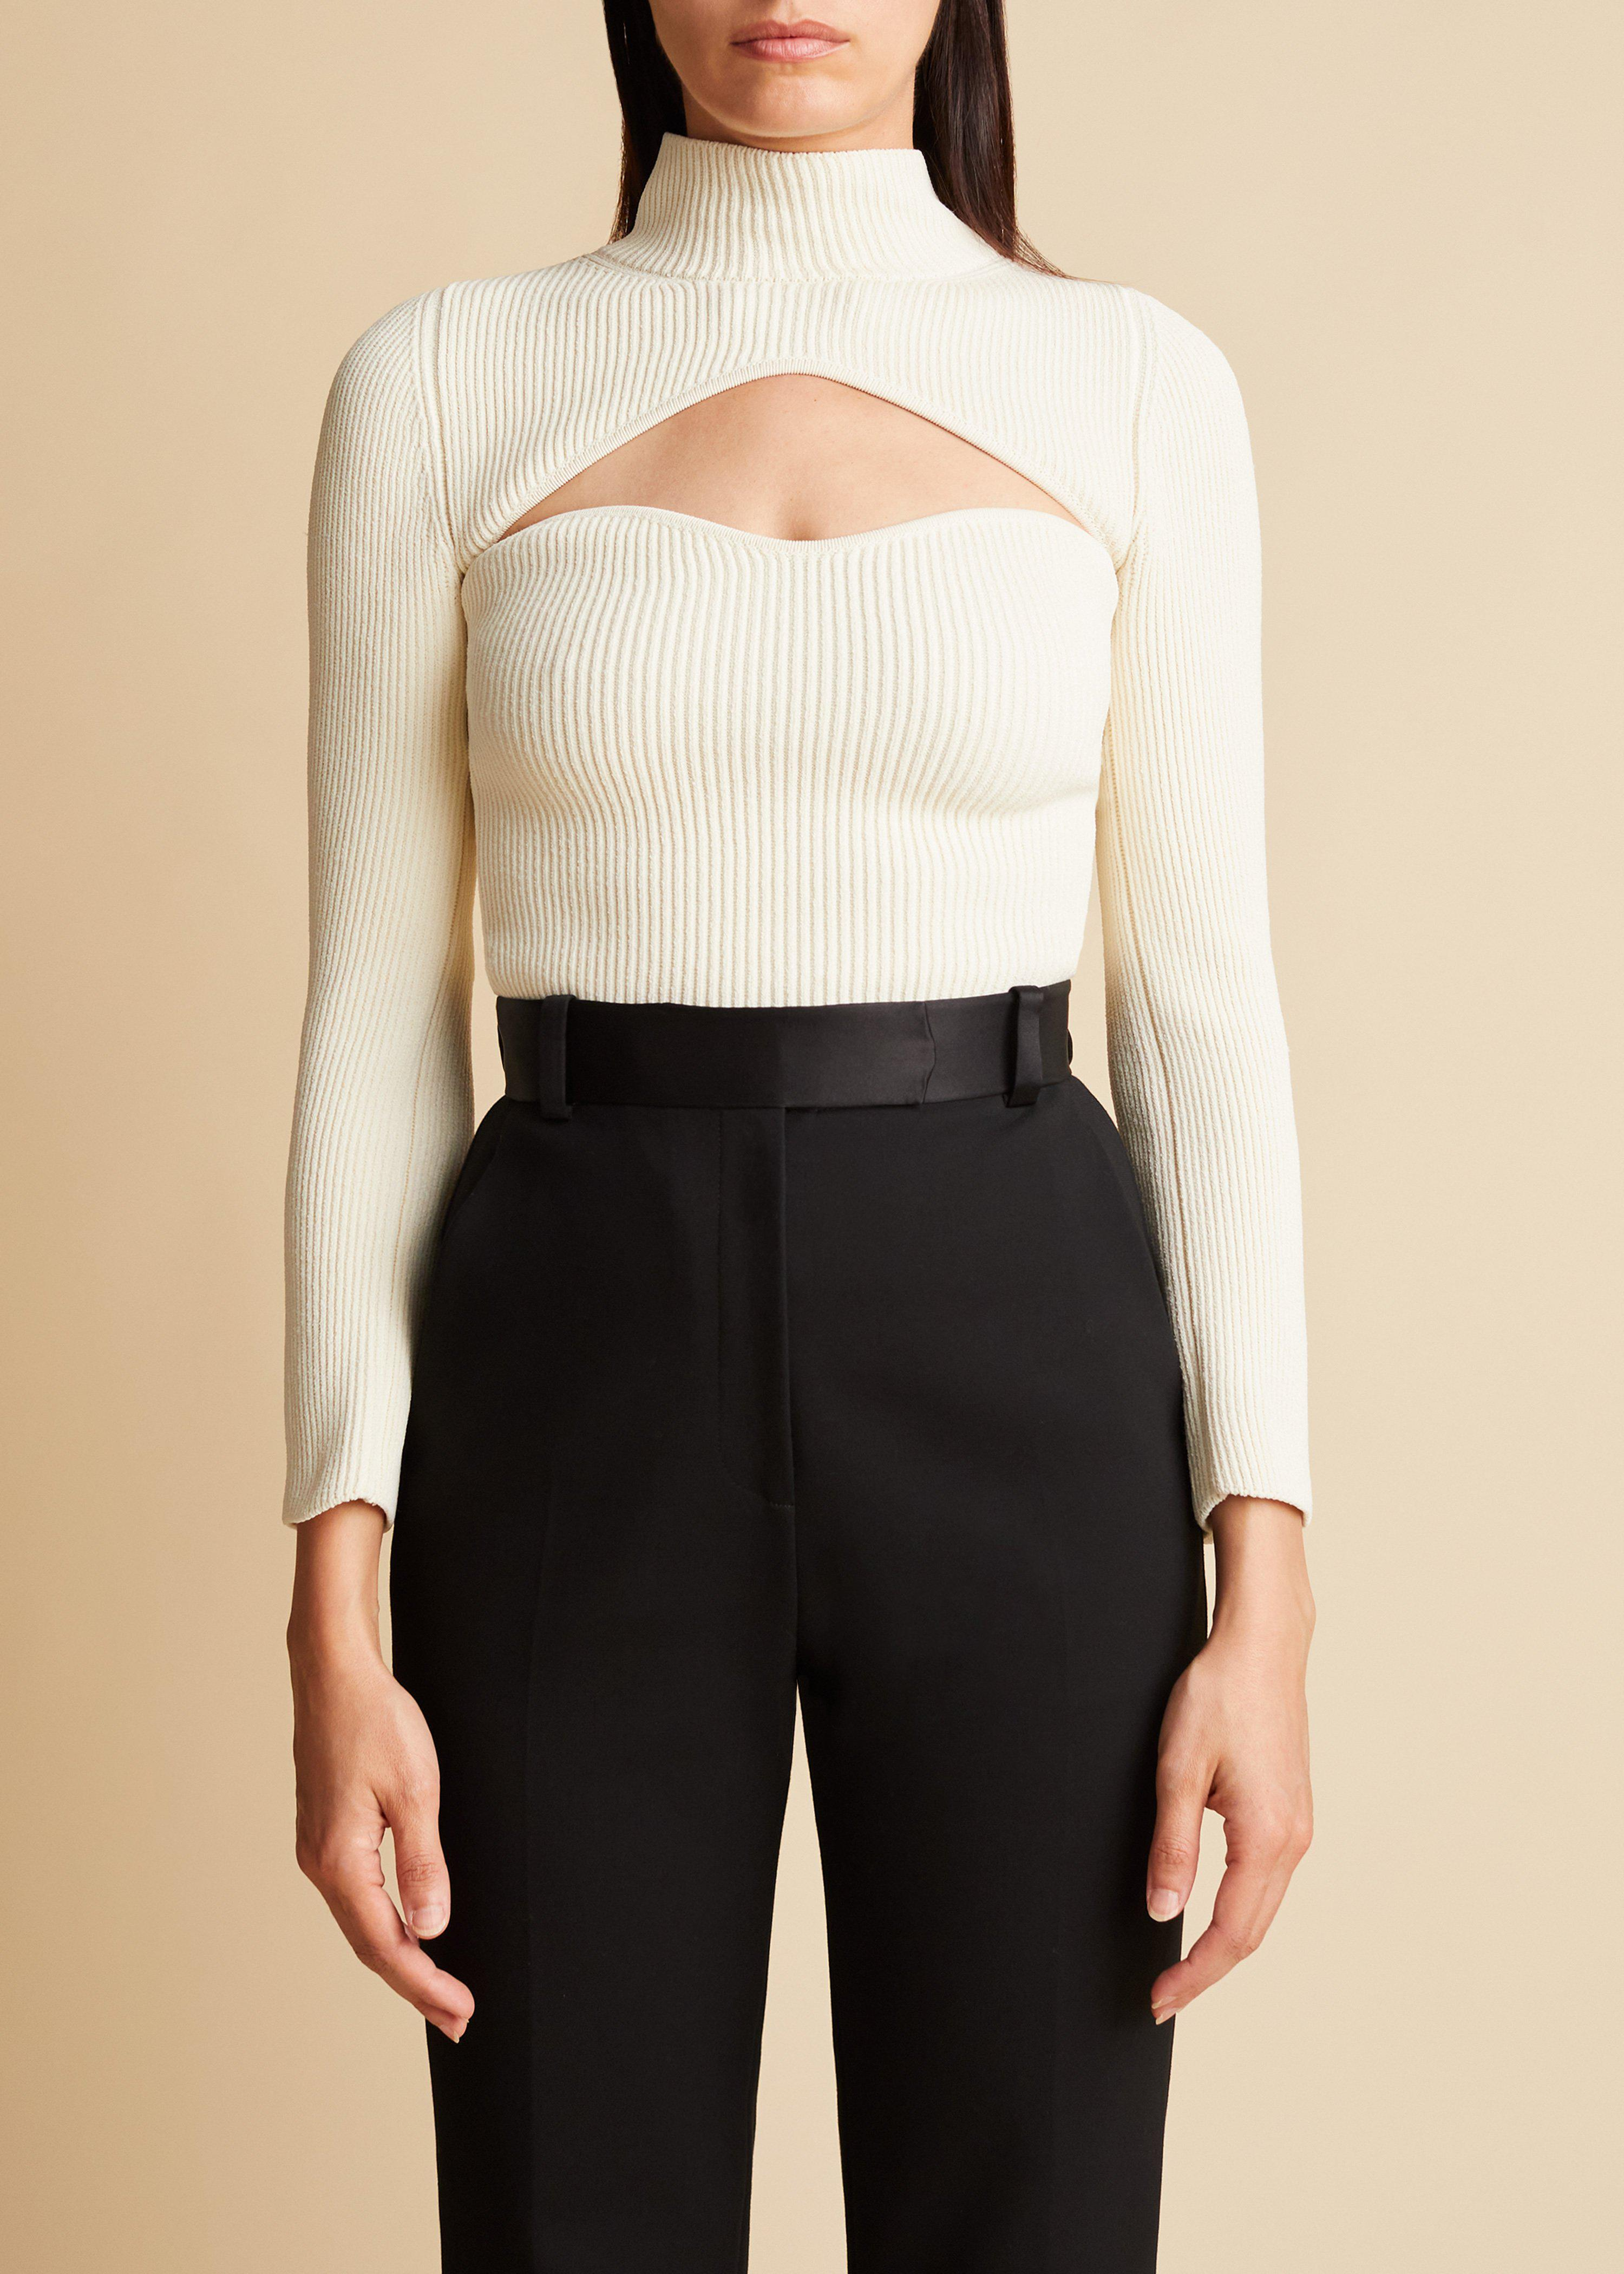 The Angela Top in Ivory